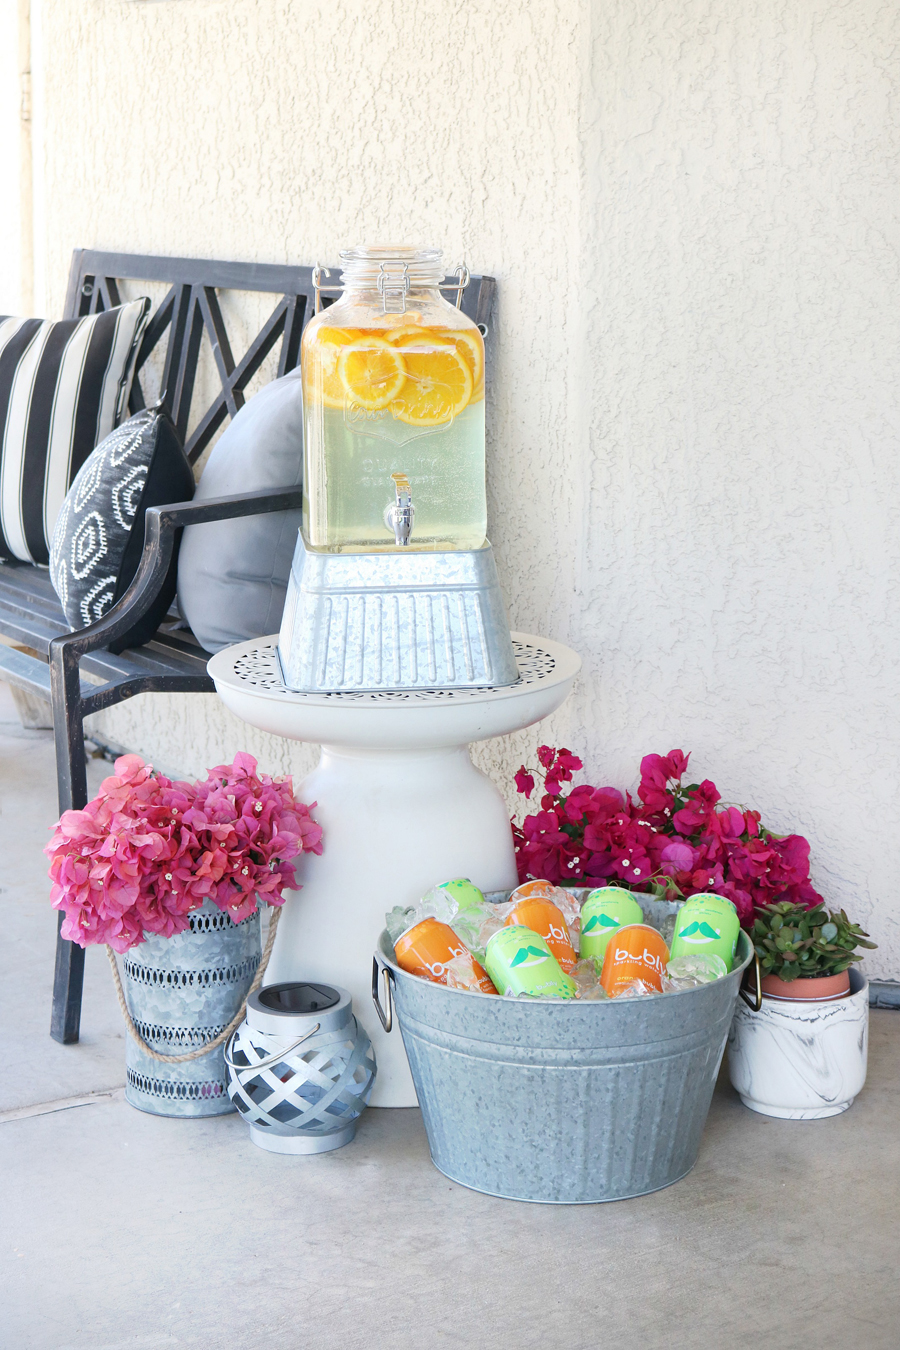 Create easy beverage stations for outdoor entertaining with products from the BHG Live Better line for Walmart.